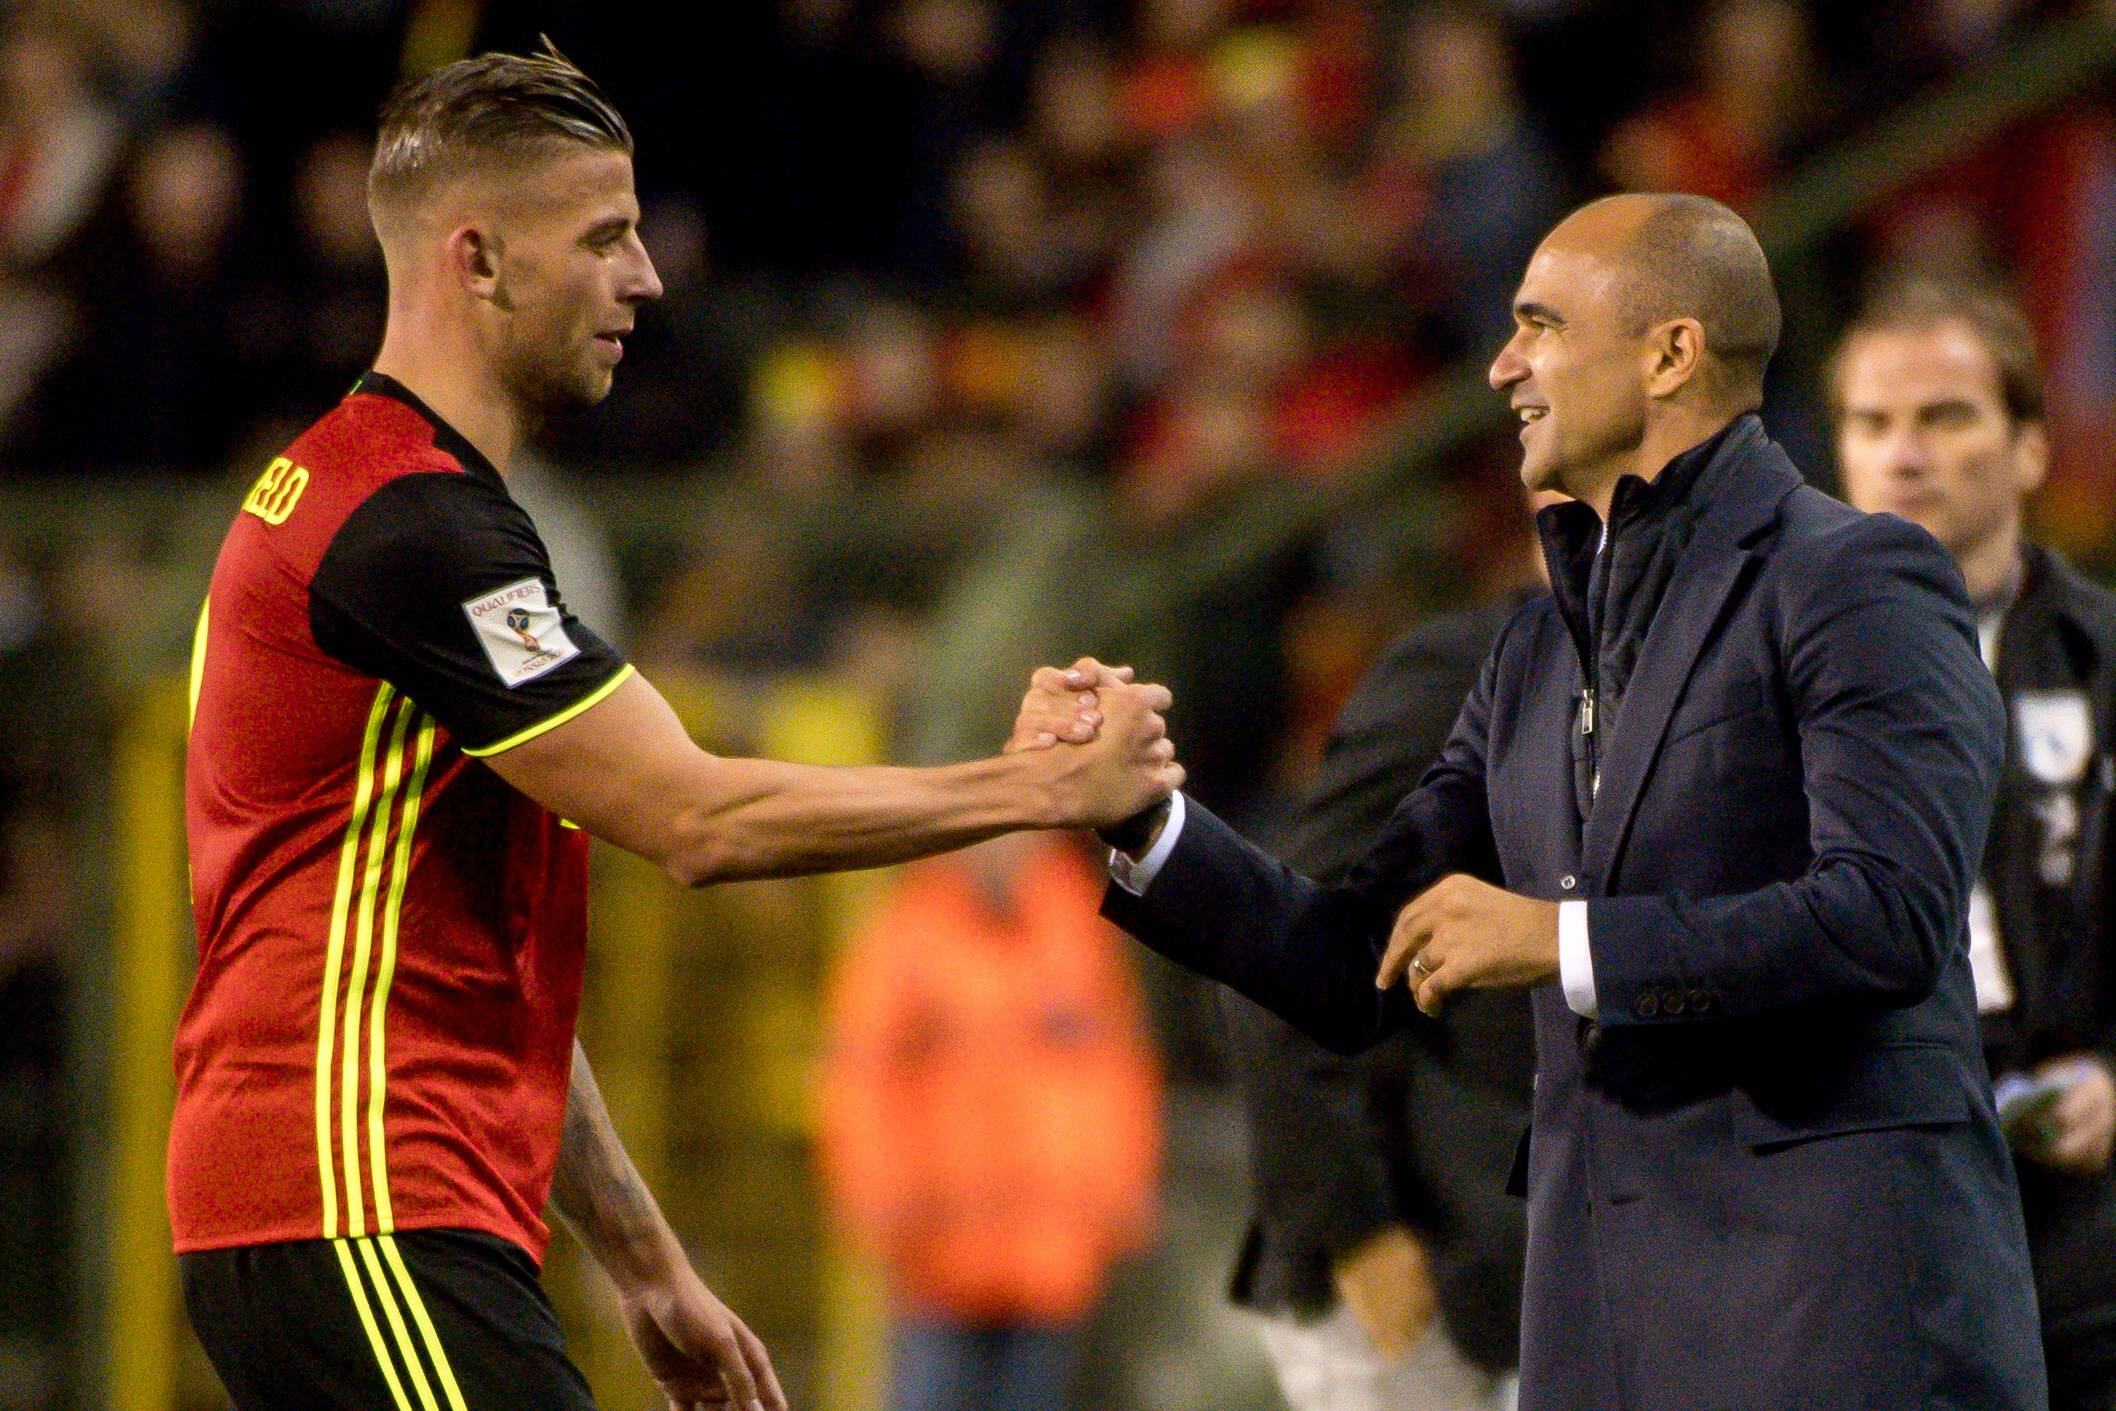 Tottenham star, Toby Alderweireld, Nacer Chadli, and Jan Vertonghen all out 2020 UEFA Euros after Belgium lost to Italy.